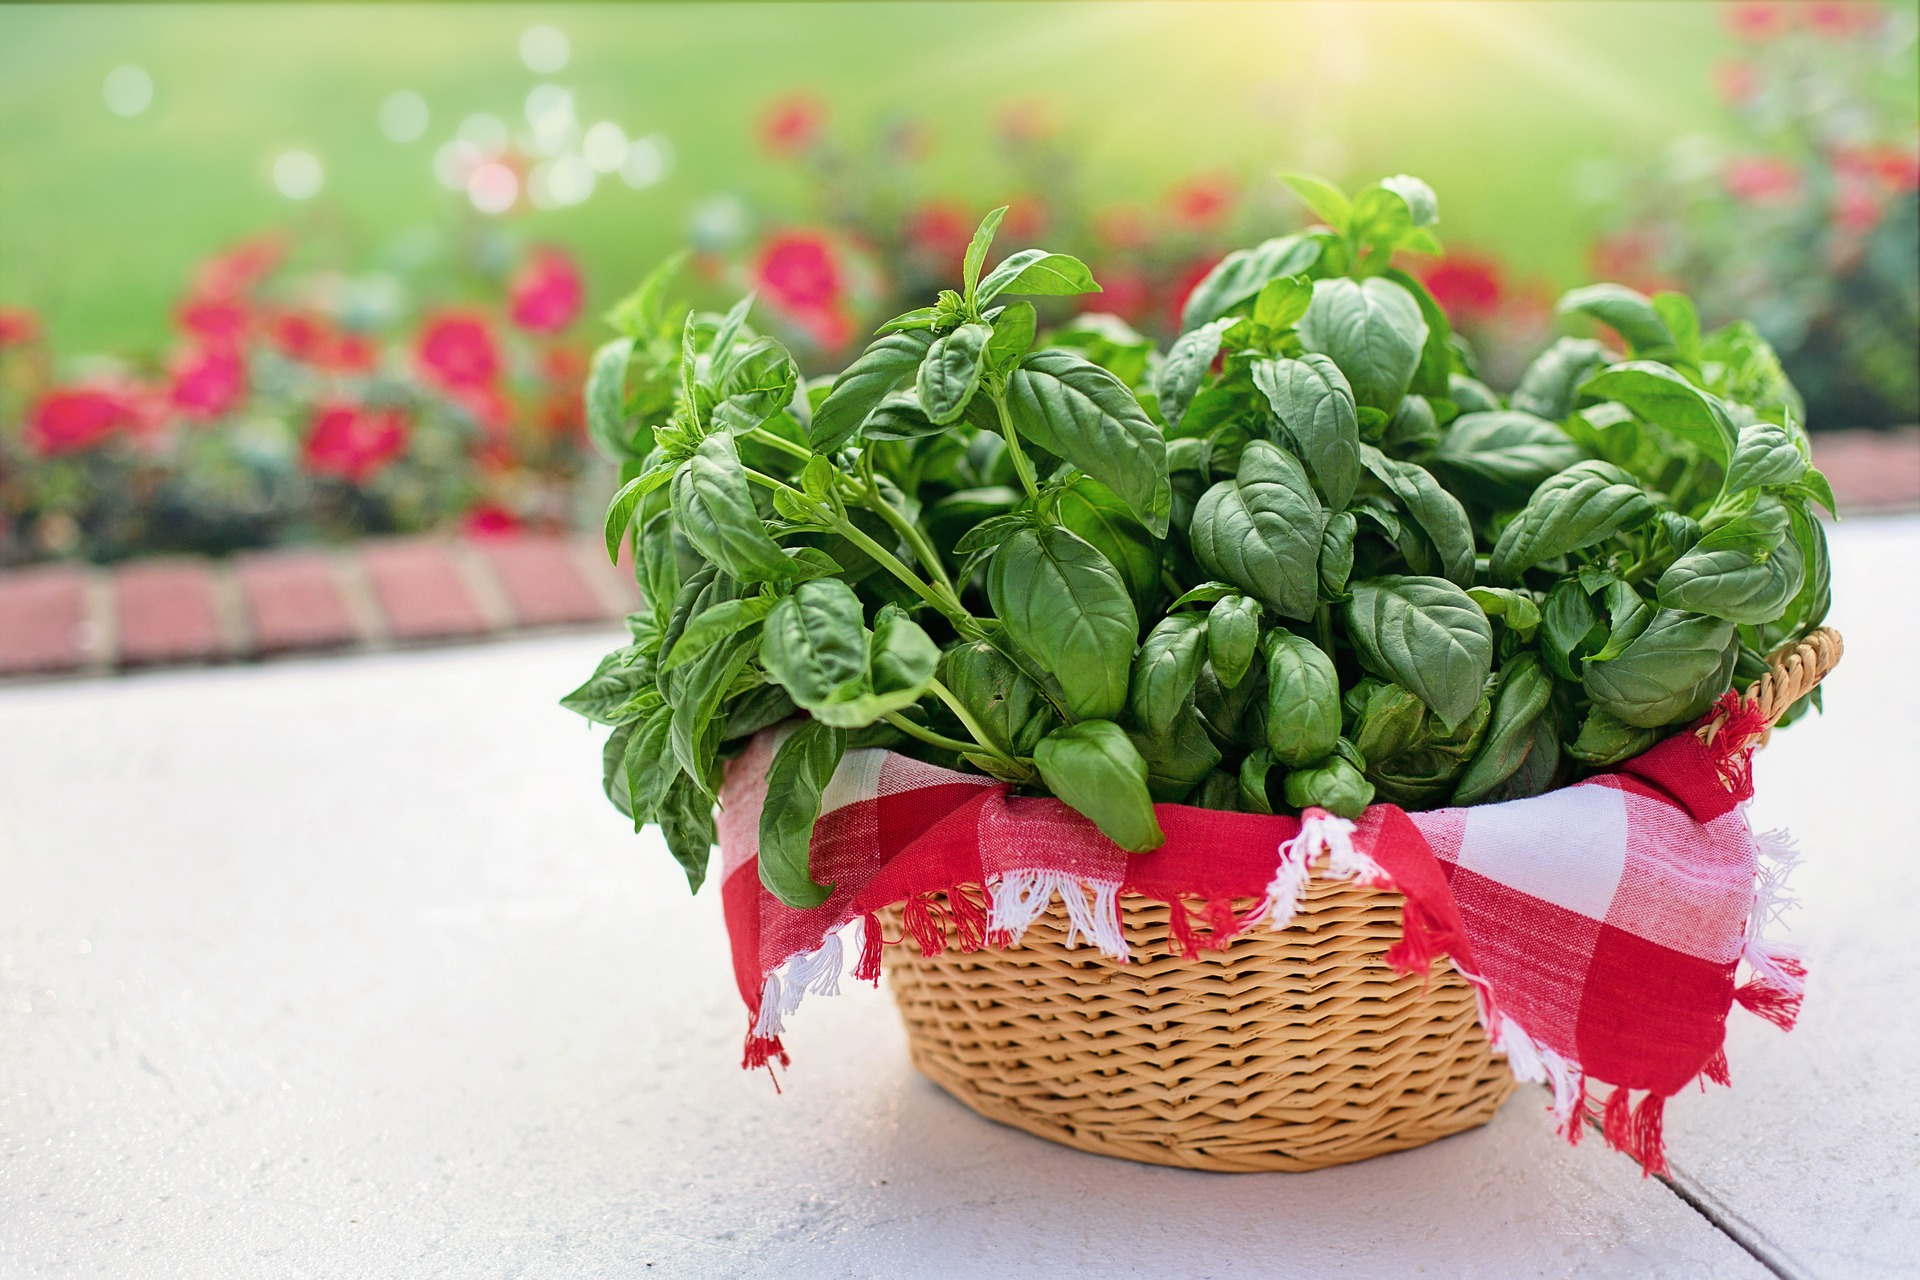 Basil uses, benefits, and nutrition